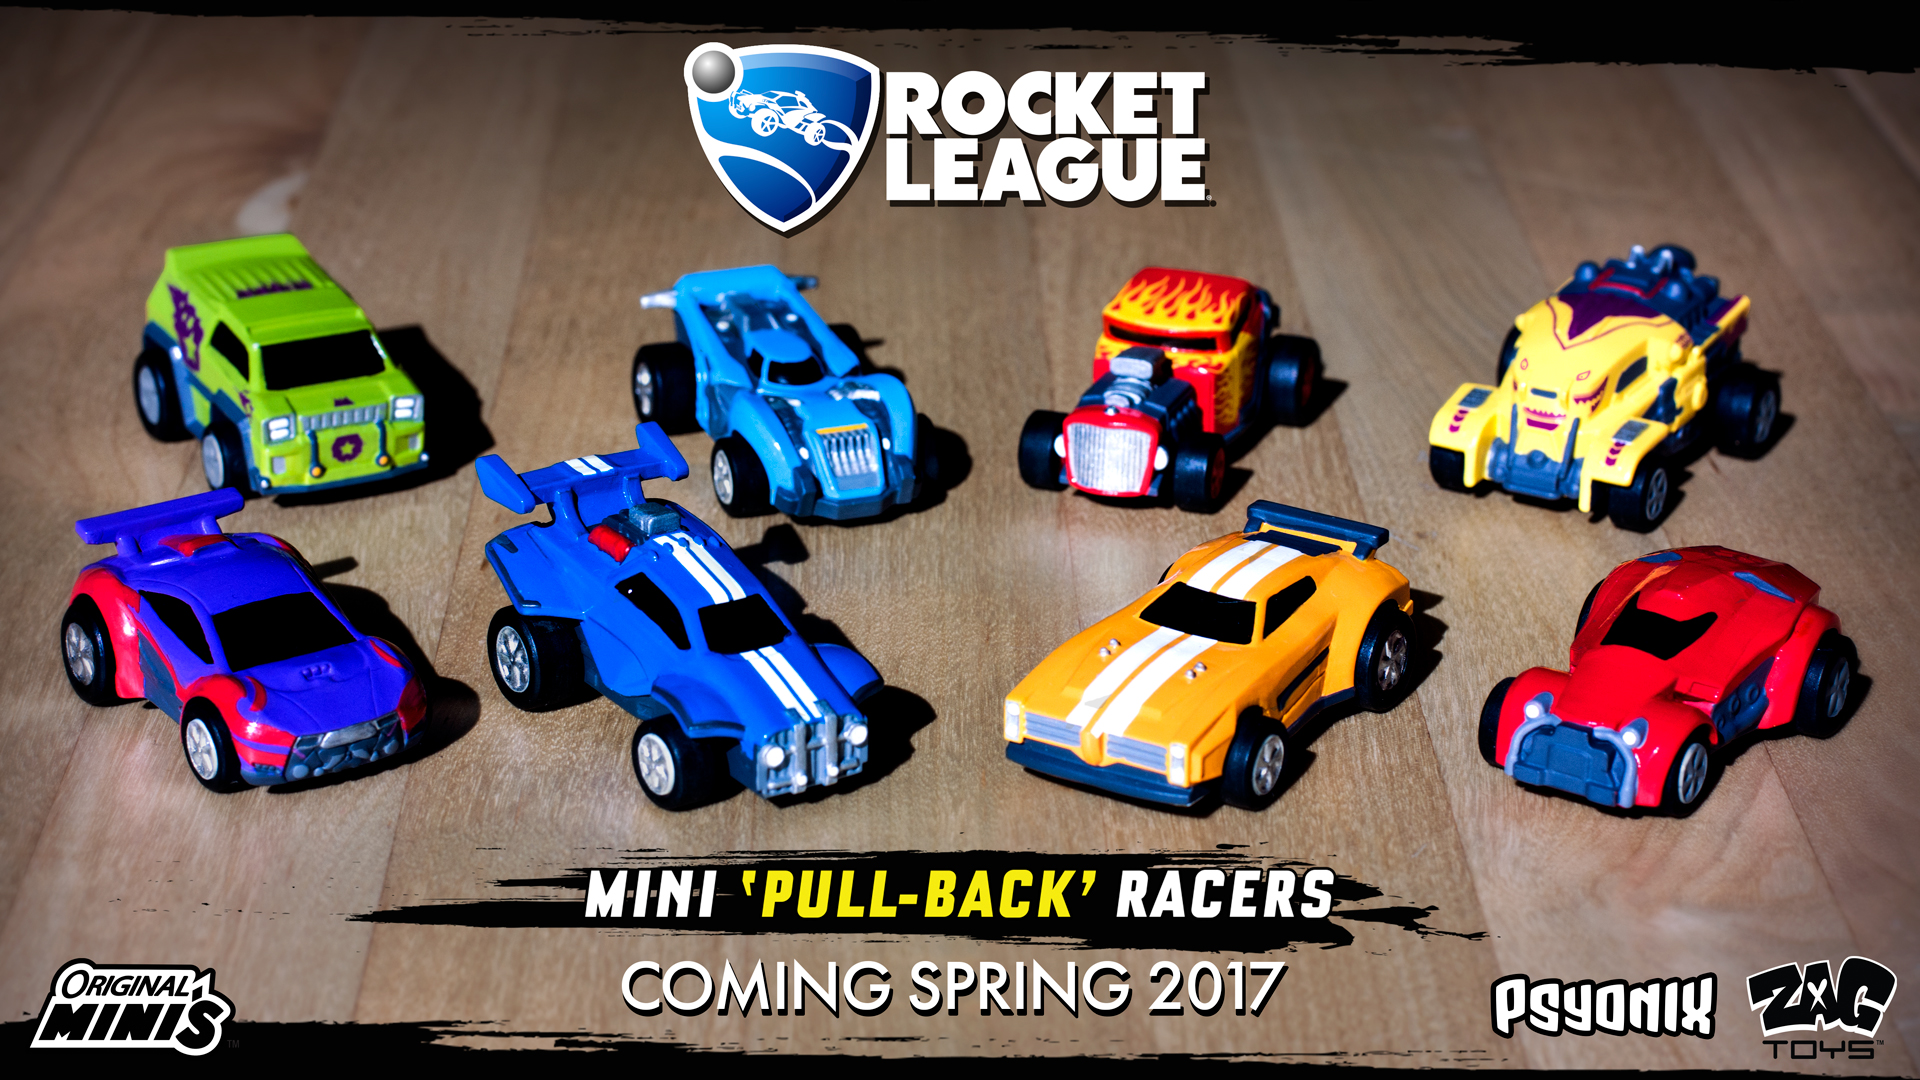 http://images.eurogamer.net/2017/articles/1/8/8/2/5/6/9/rocket-league-is-getting-physical-toy-car-adaptations-148606733675.jpg